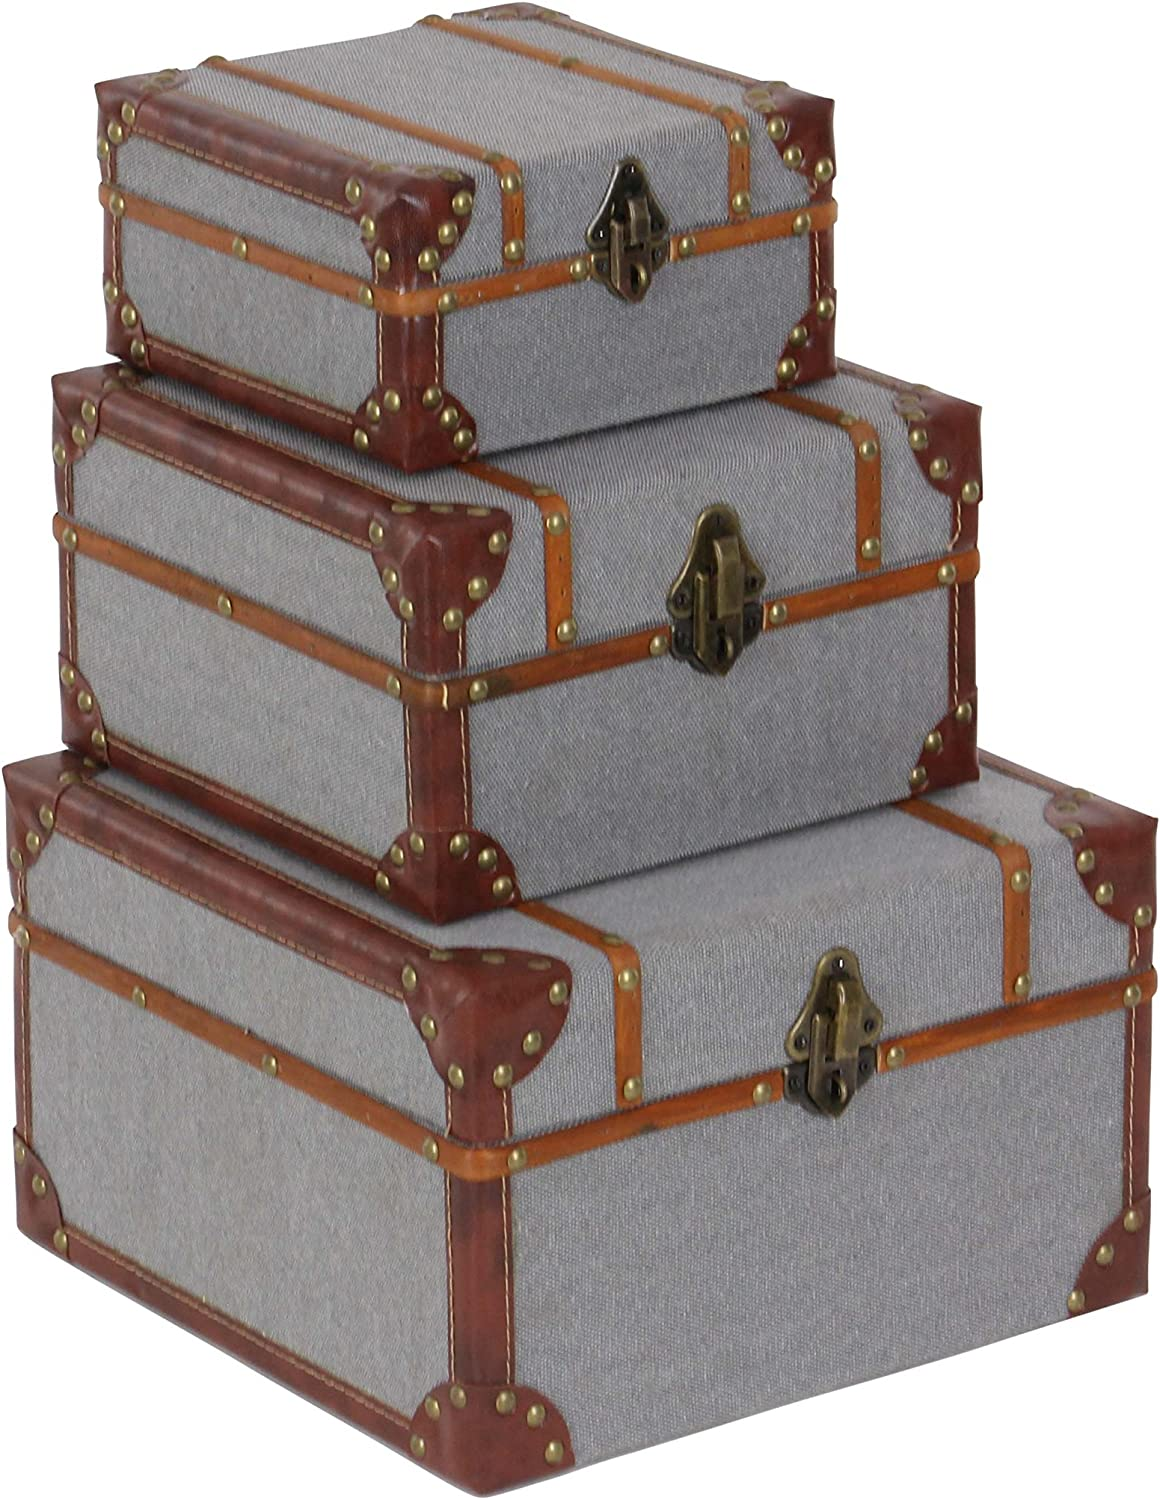 Deco 79 54070 Wood and Burlap Storage of Online limited product x 8